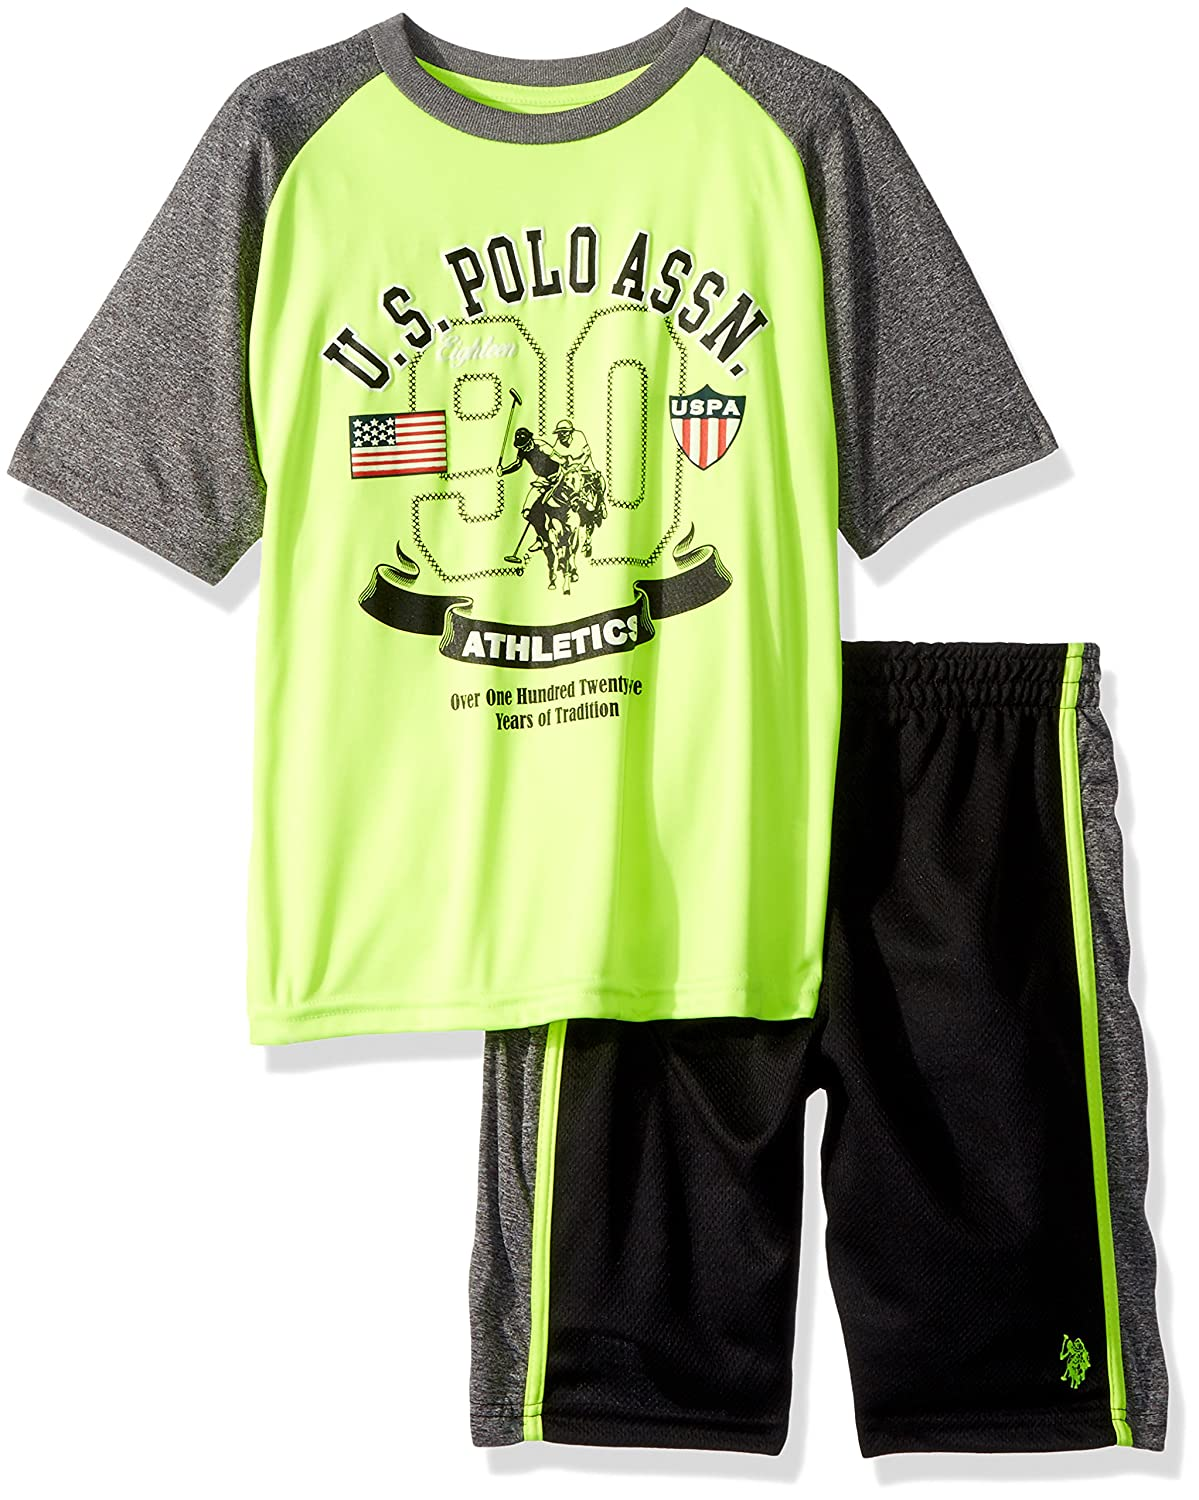 U.S. Polo Assn....... Boys T-Shirt and Mesh Short Set